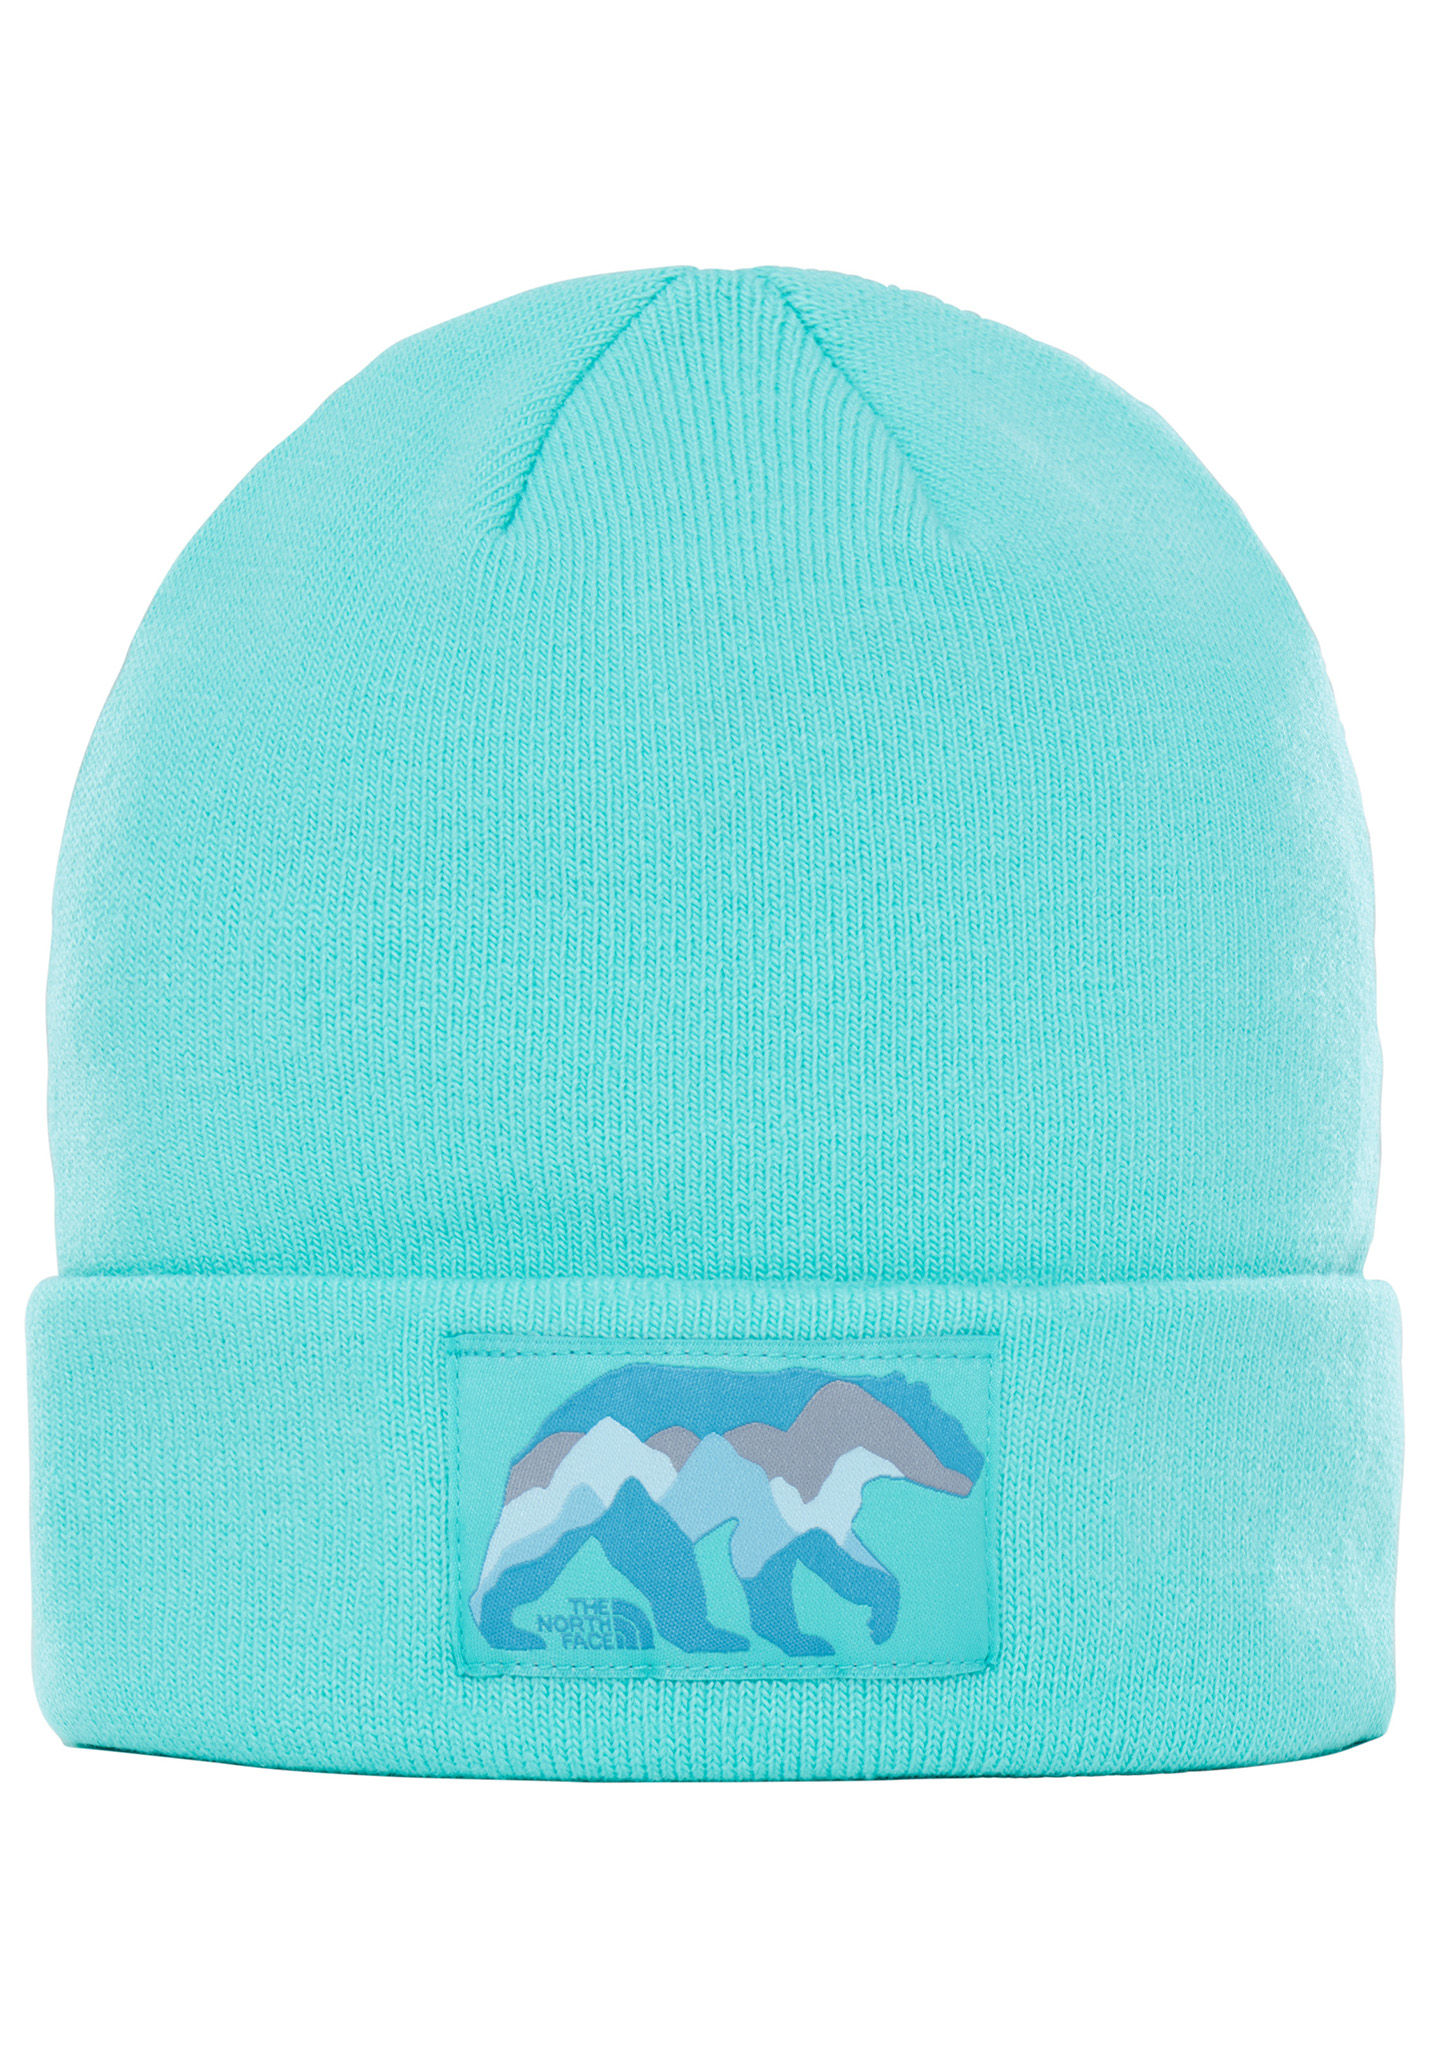 THE NORTH FACE Dock Worker - Gorro - Multicolor - Planet Sports 602b3104907